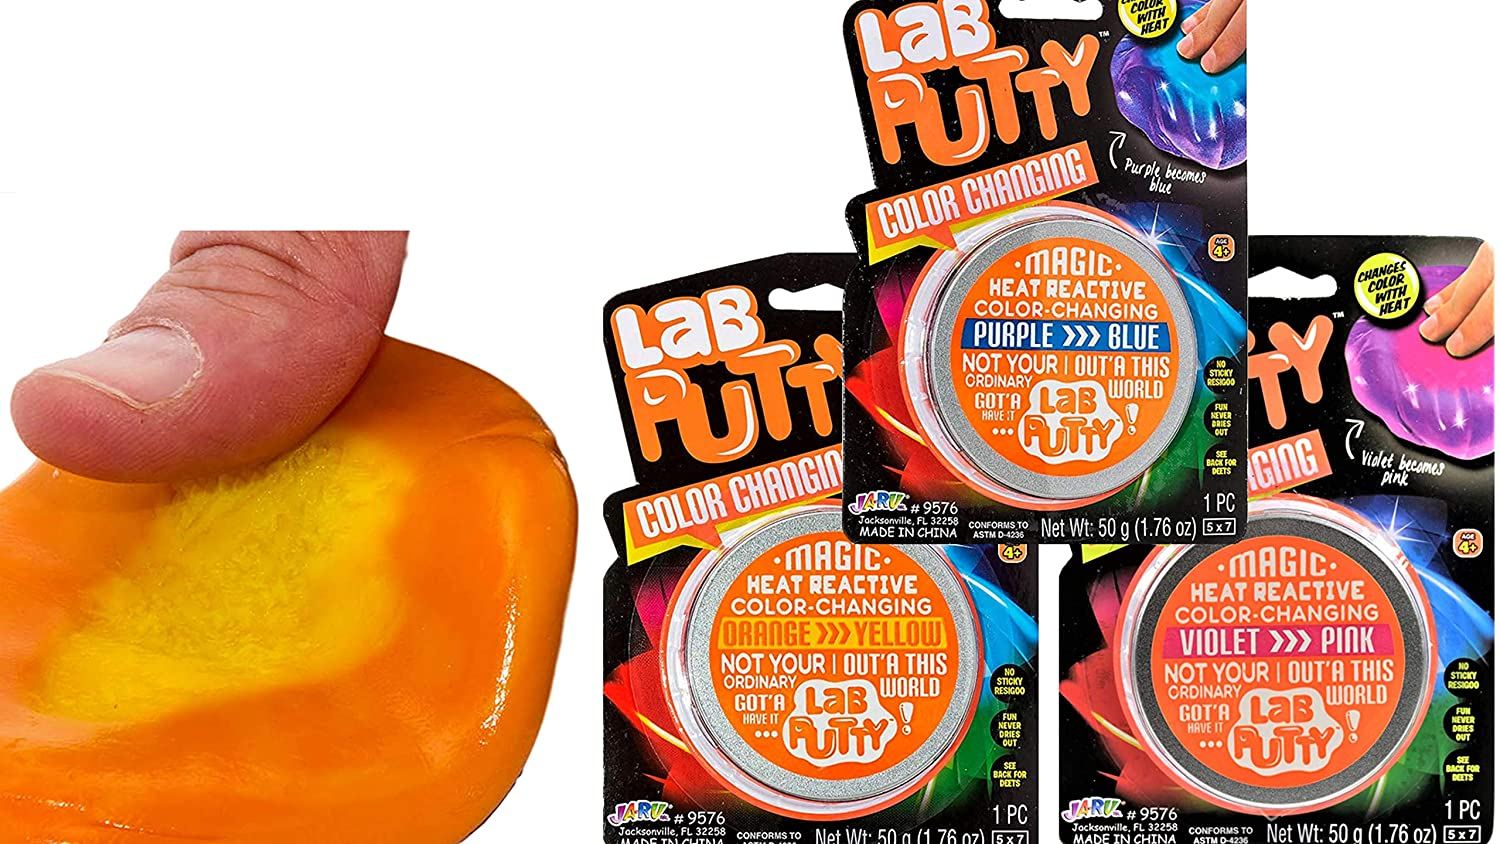 JA-RU Lab Putty Color Changing Heat Sensitive Bouncing (3 Units Assorted) Putty for Kids Best Thinking Silly Smart Crazy Stress Relief Putty with Tin, Sensory Toys Party Favor for Kids 9576-3p